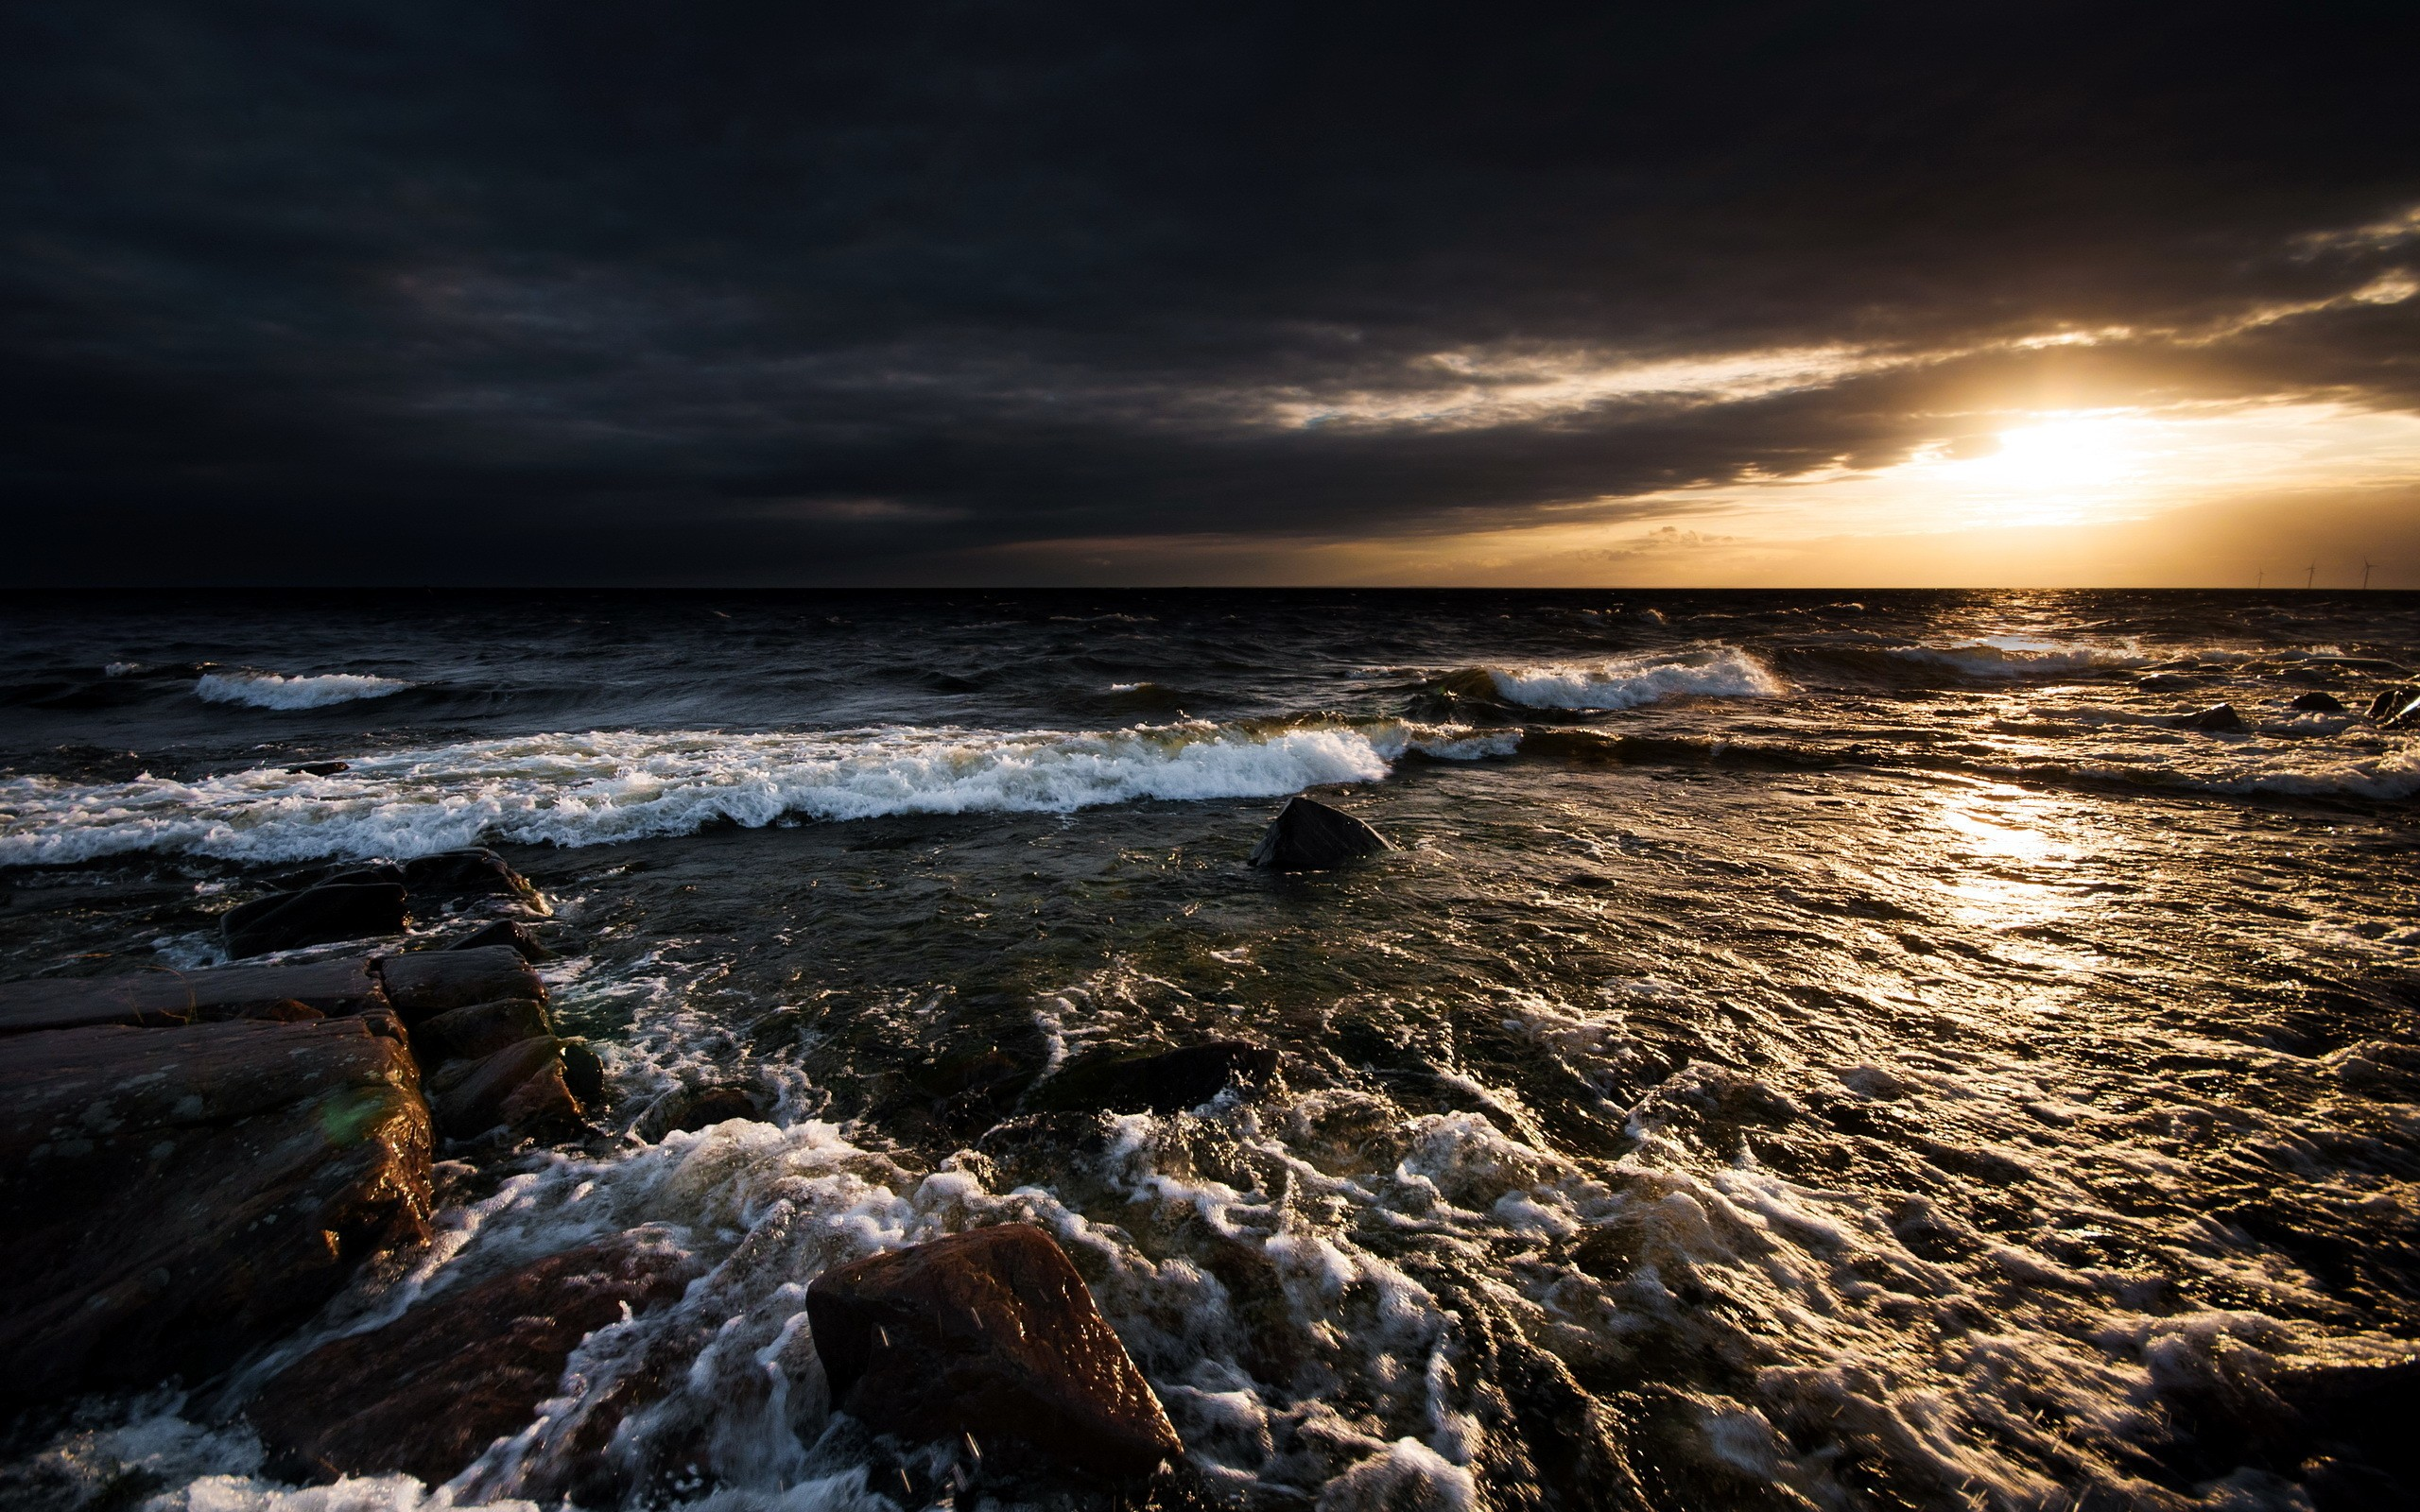 Daily Wallpaper: Stormy Waterscape | I Like To Waste My Time